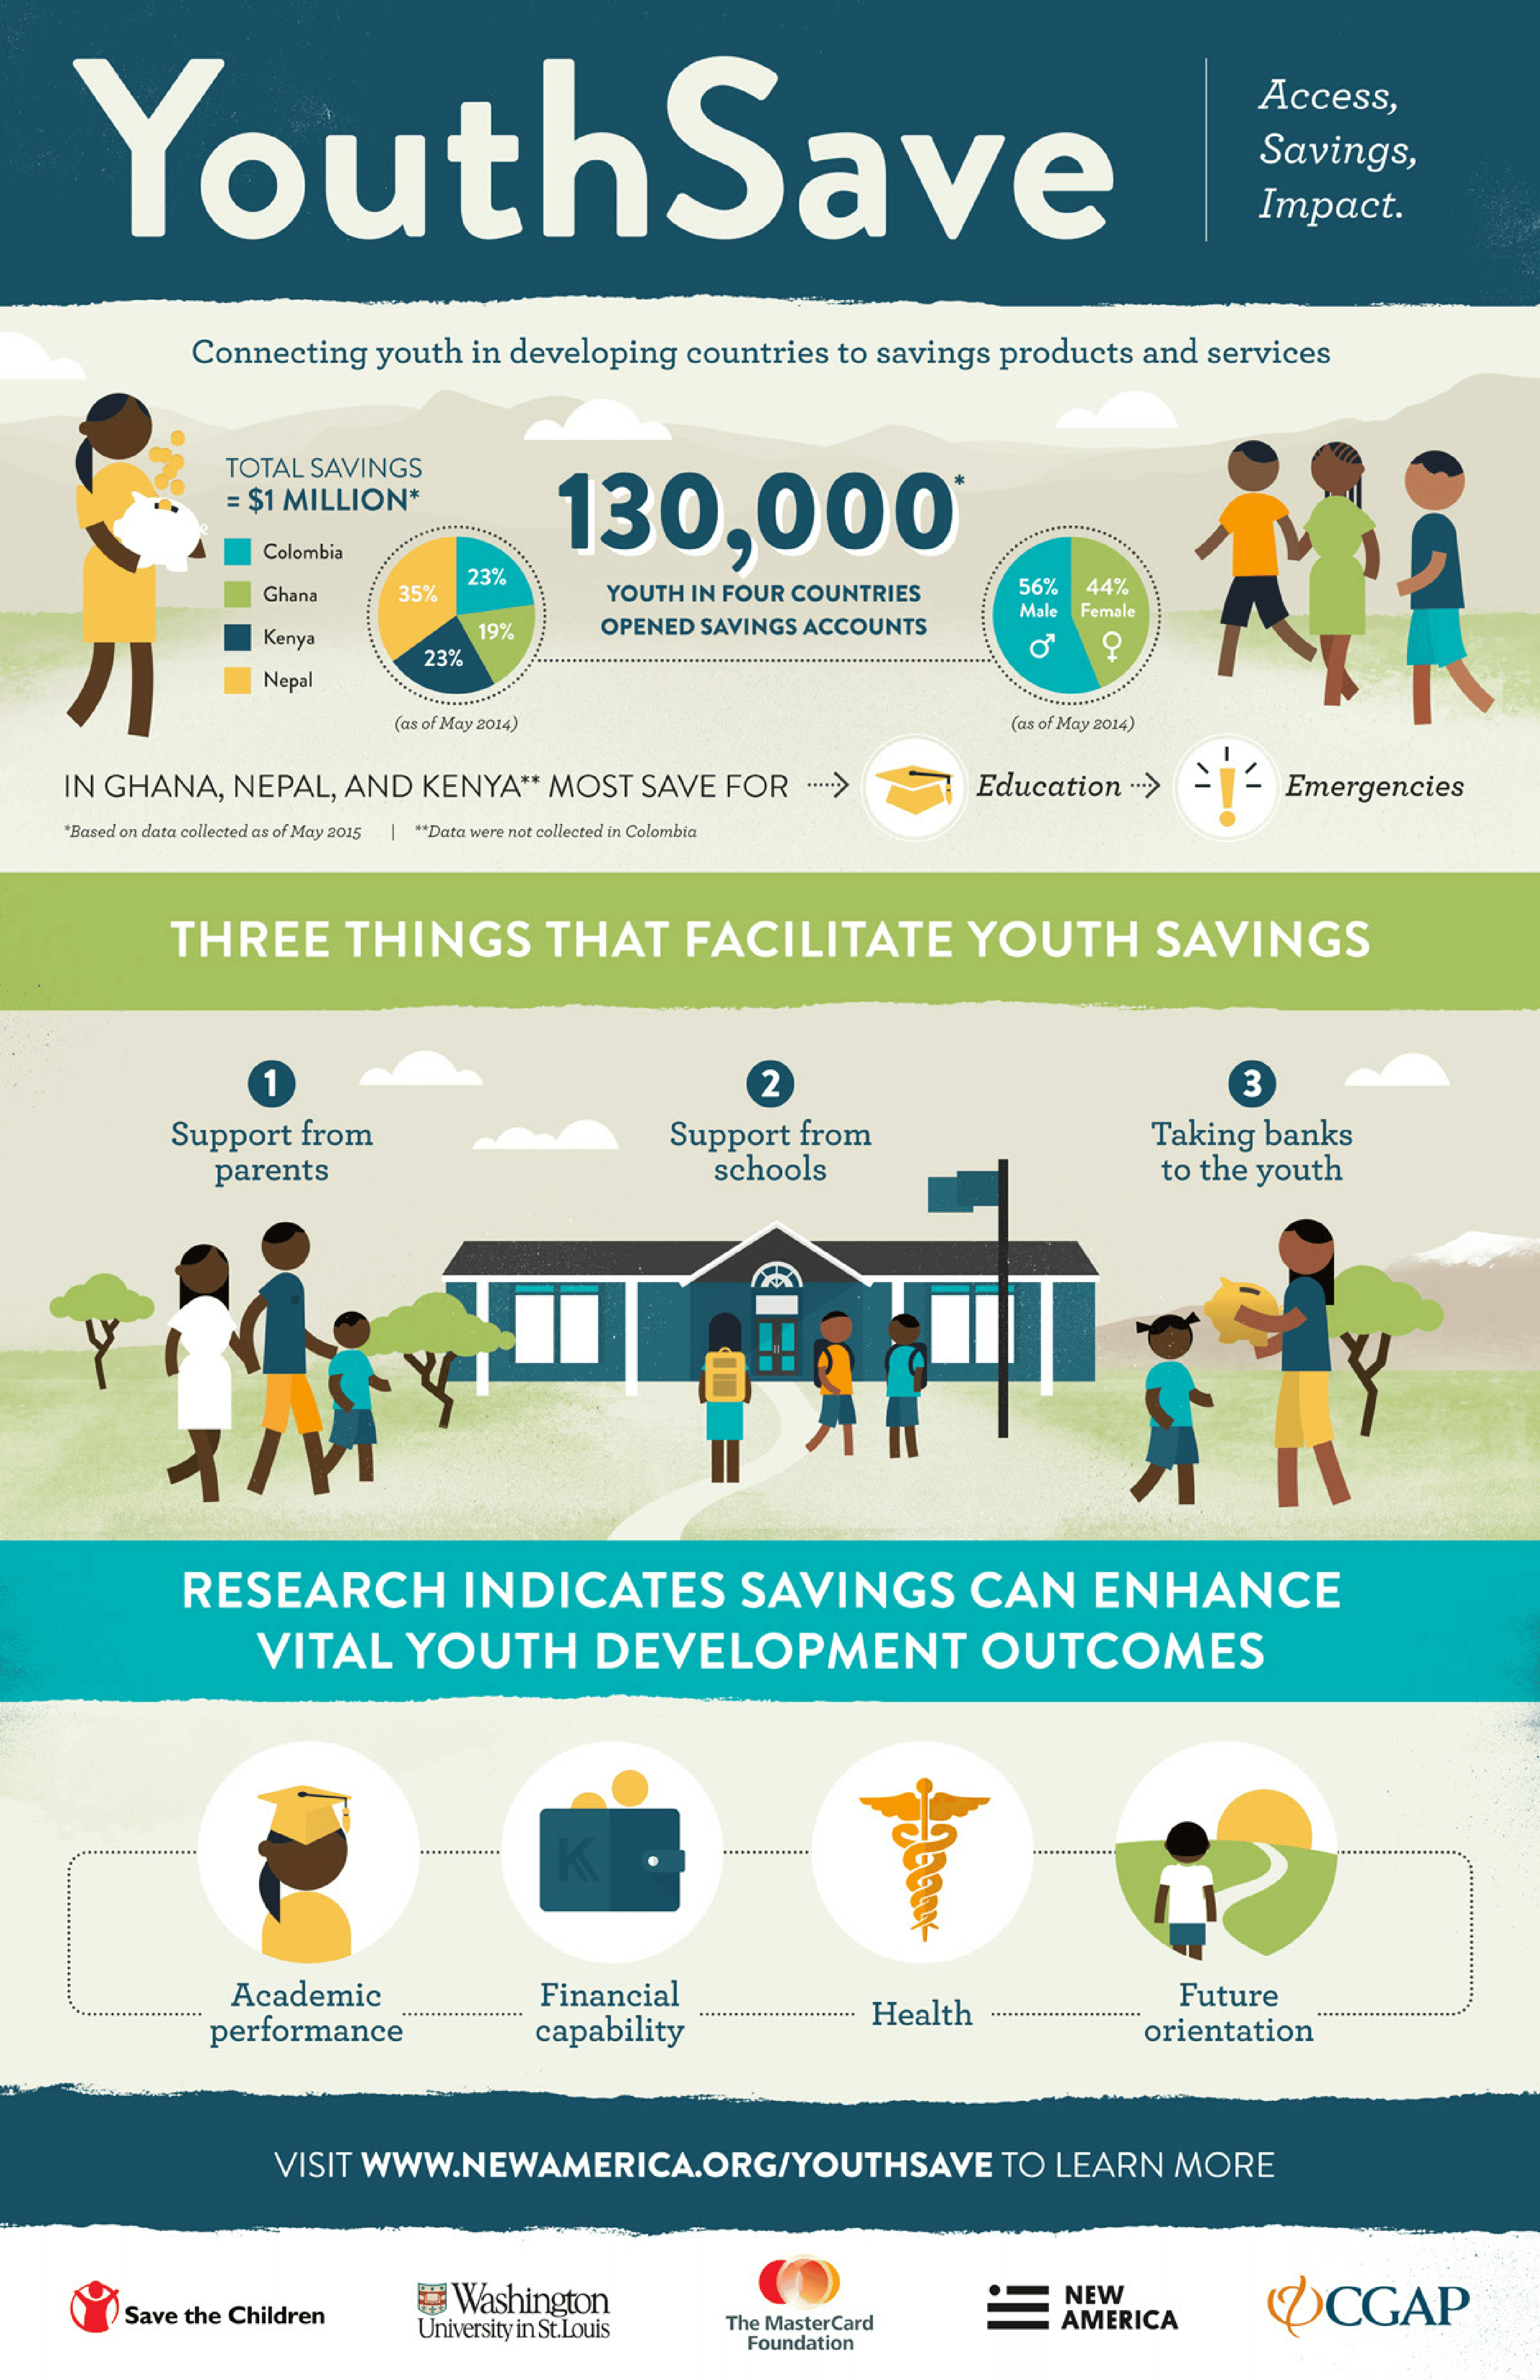 Connecting Youth In Developing Countries To Savings Accounts